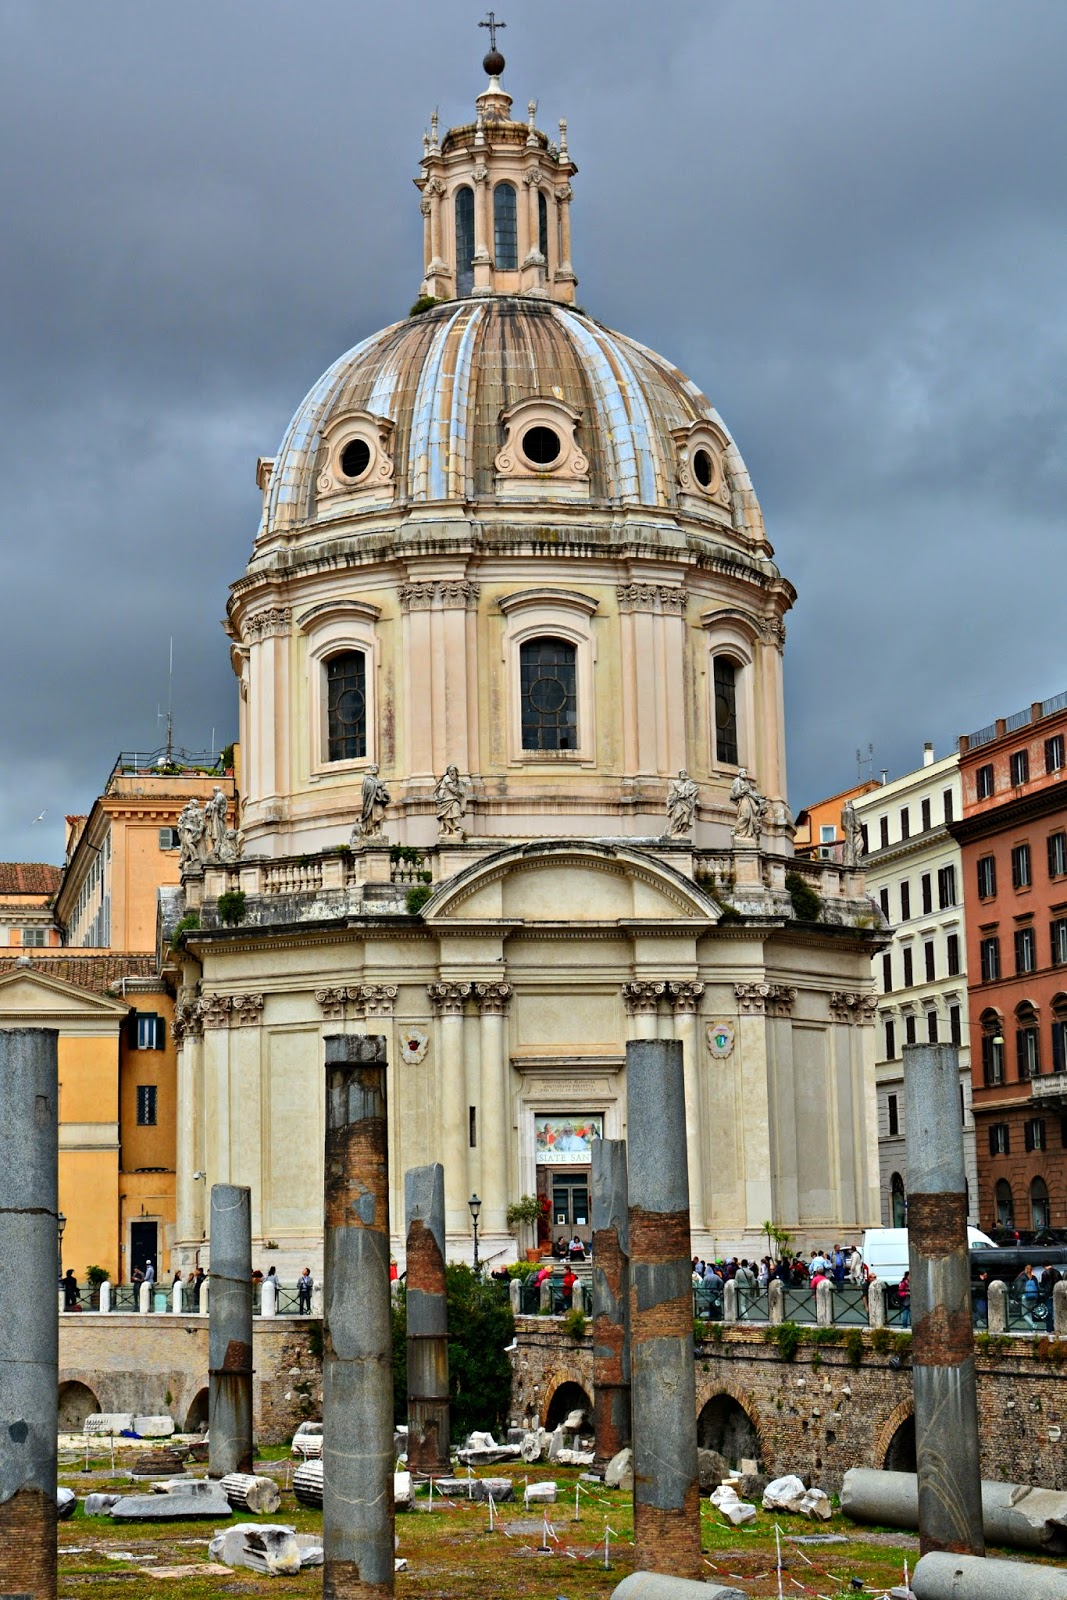 Church in Rome, Italy